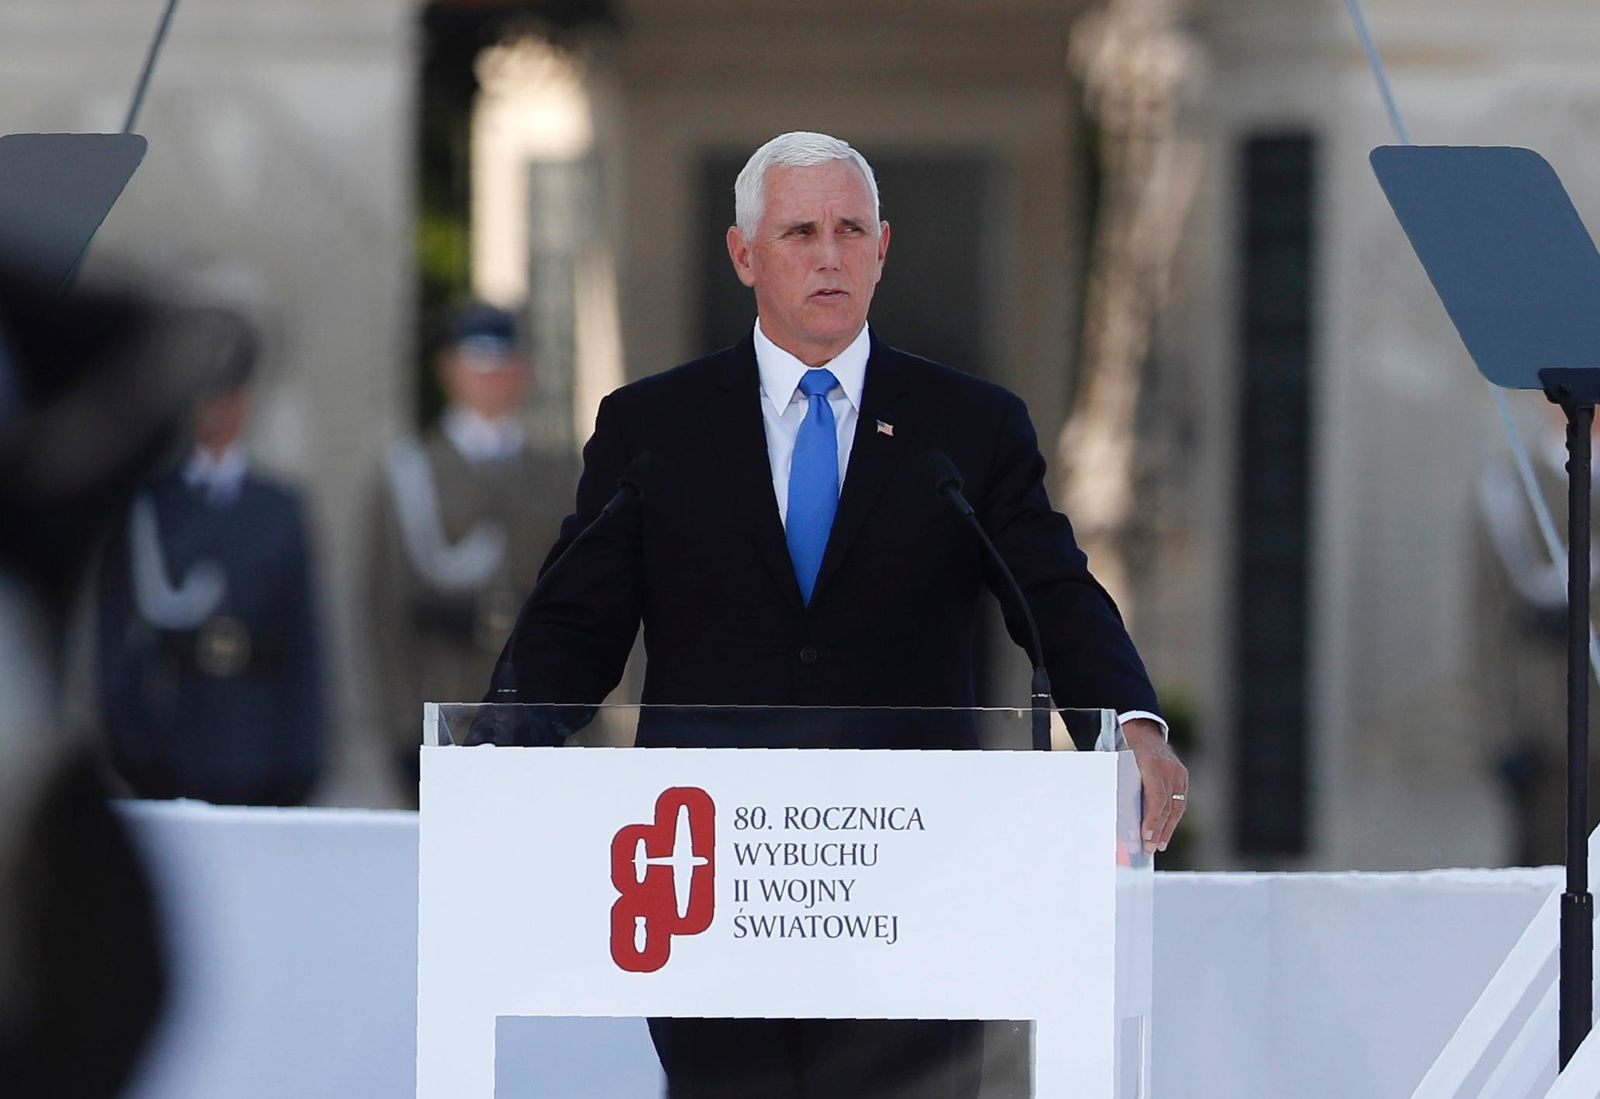 U.S. Vice President Mike Pence speaks during a memorial ceremony marking the 80th anniversary of the start of World War II in Warsaw, Poland, Sunday, Sept. 1, 2019. (AP Photo/Petr David Josek)